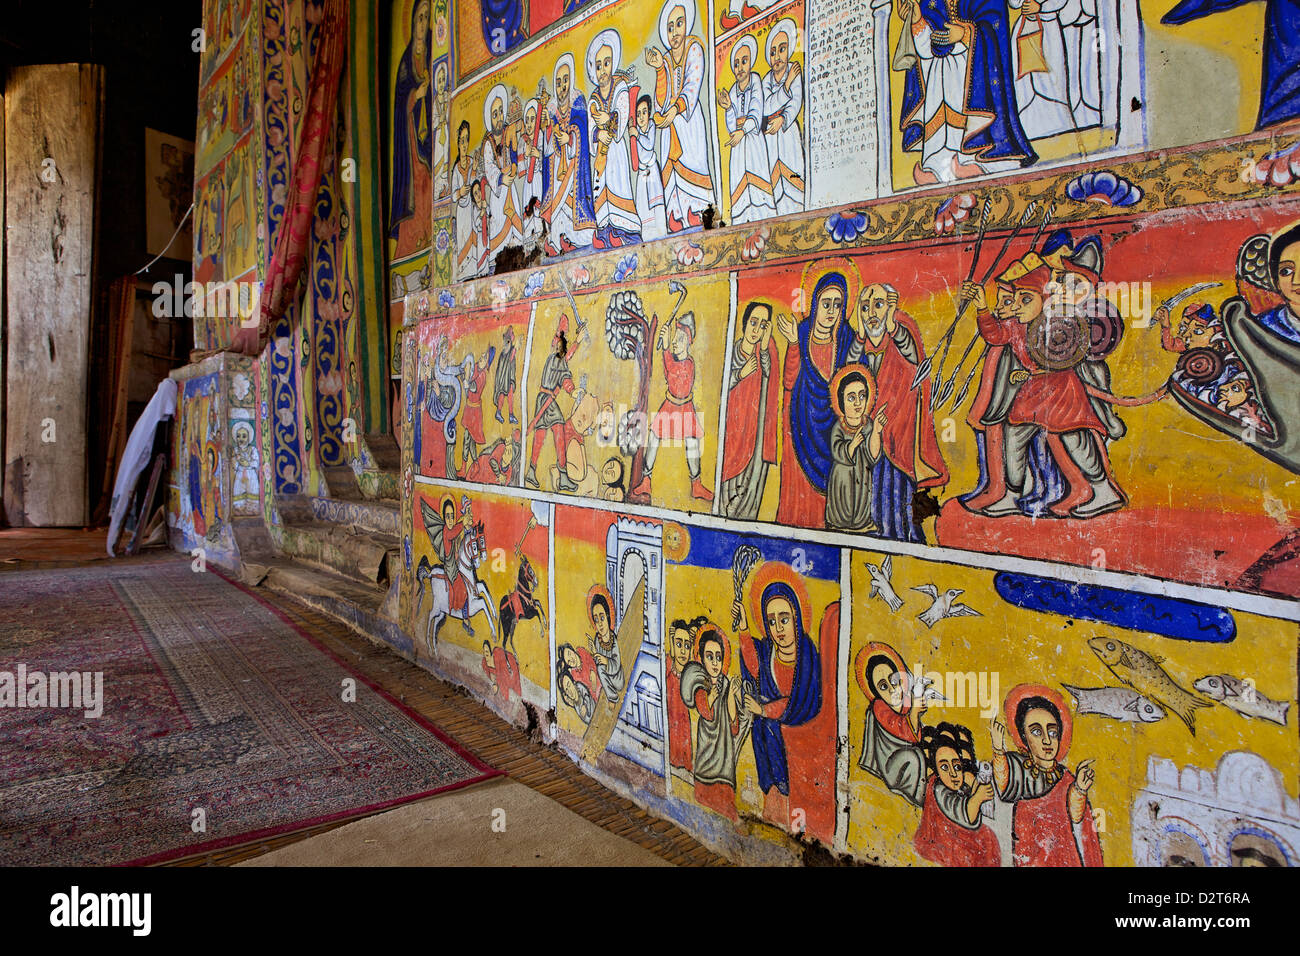 Murals in the interior of the Christian Monastery and church of Azuwa Maryam, Zege Peninsula, Lake Tana, Bahir Dar, - Stock Image